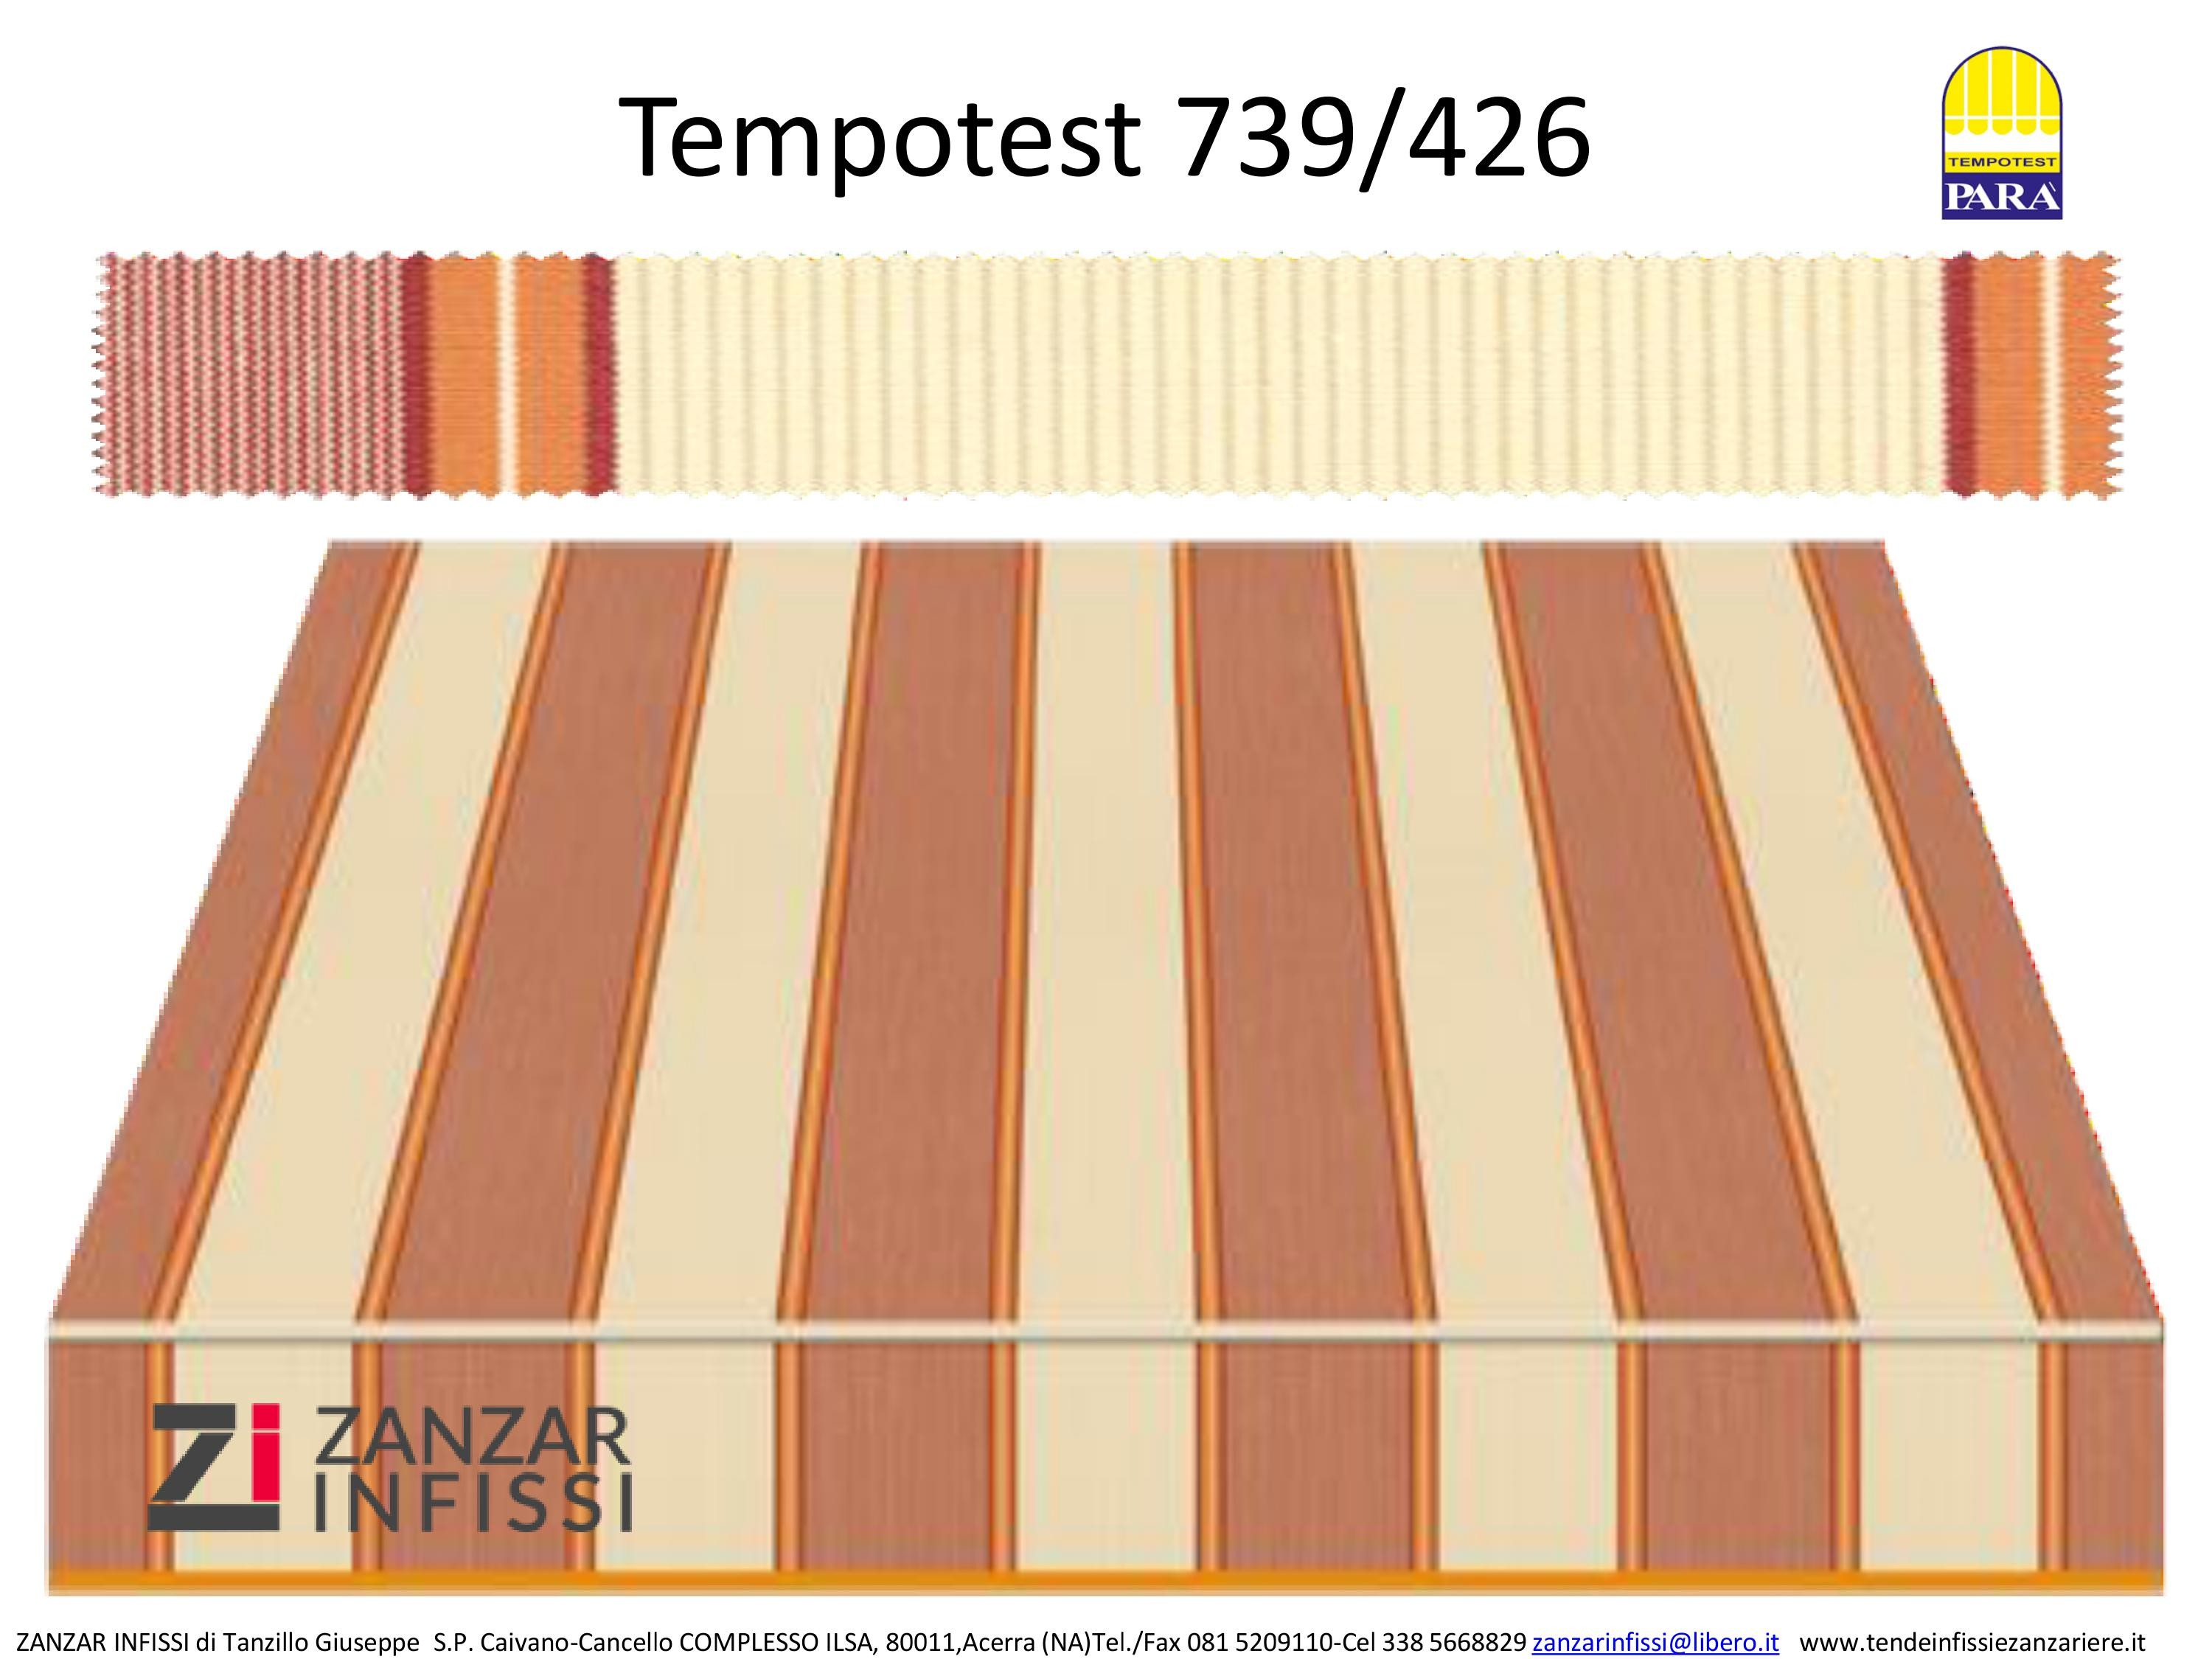 Tempotest 739/426